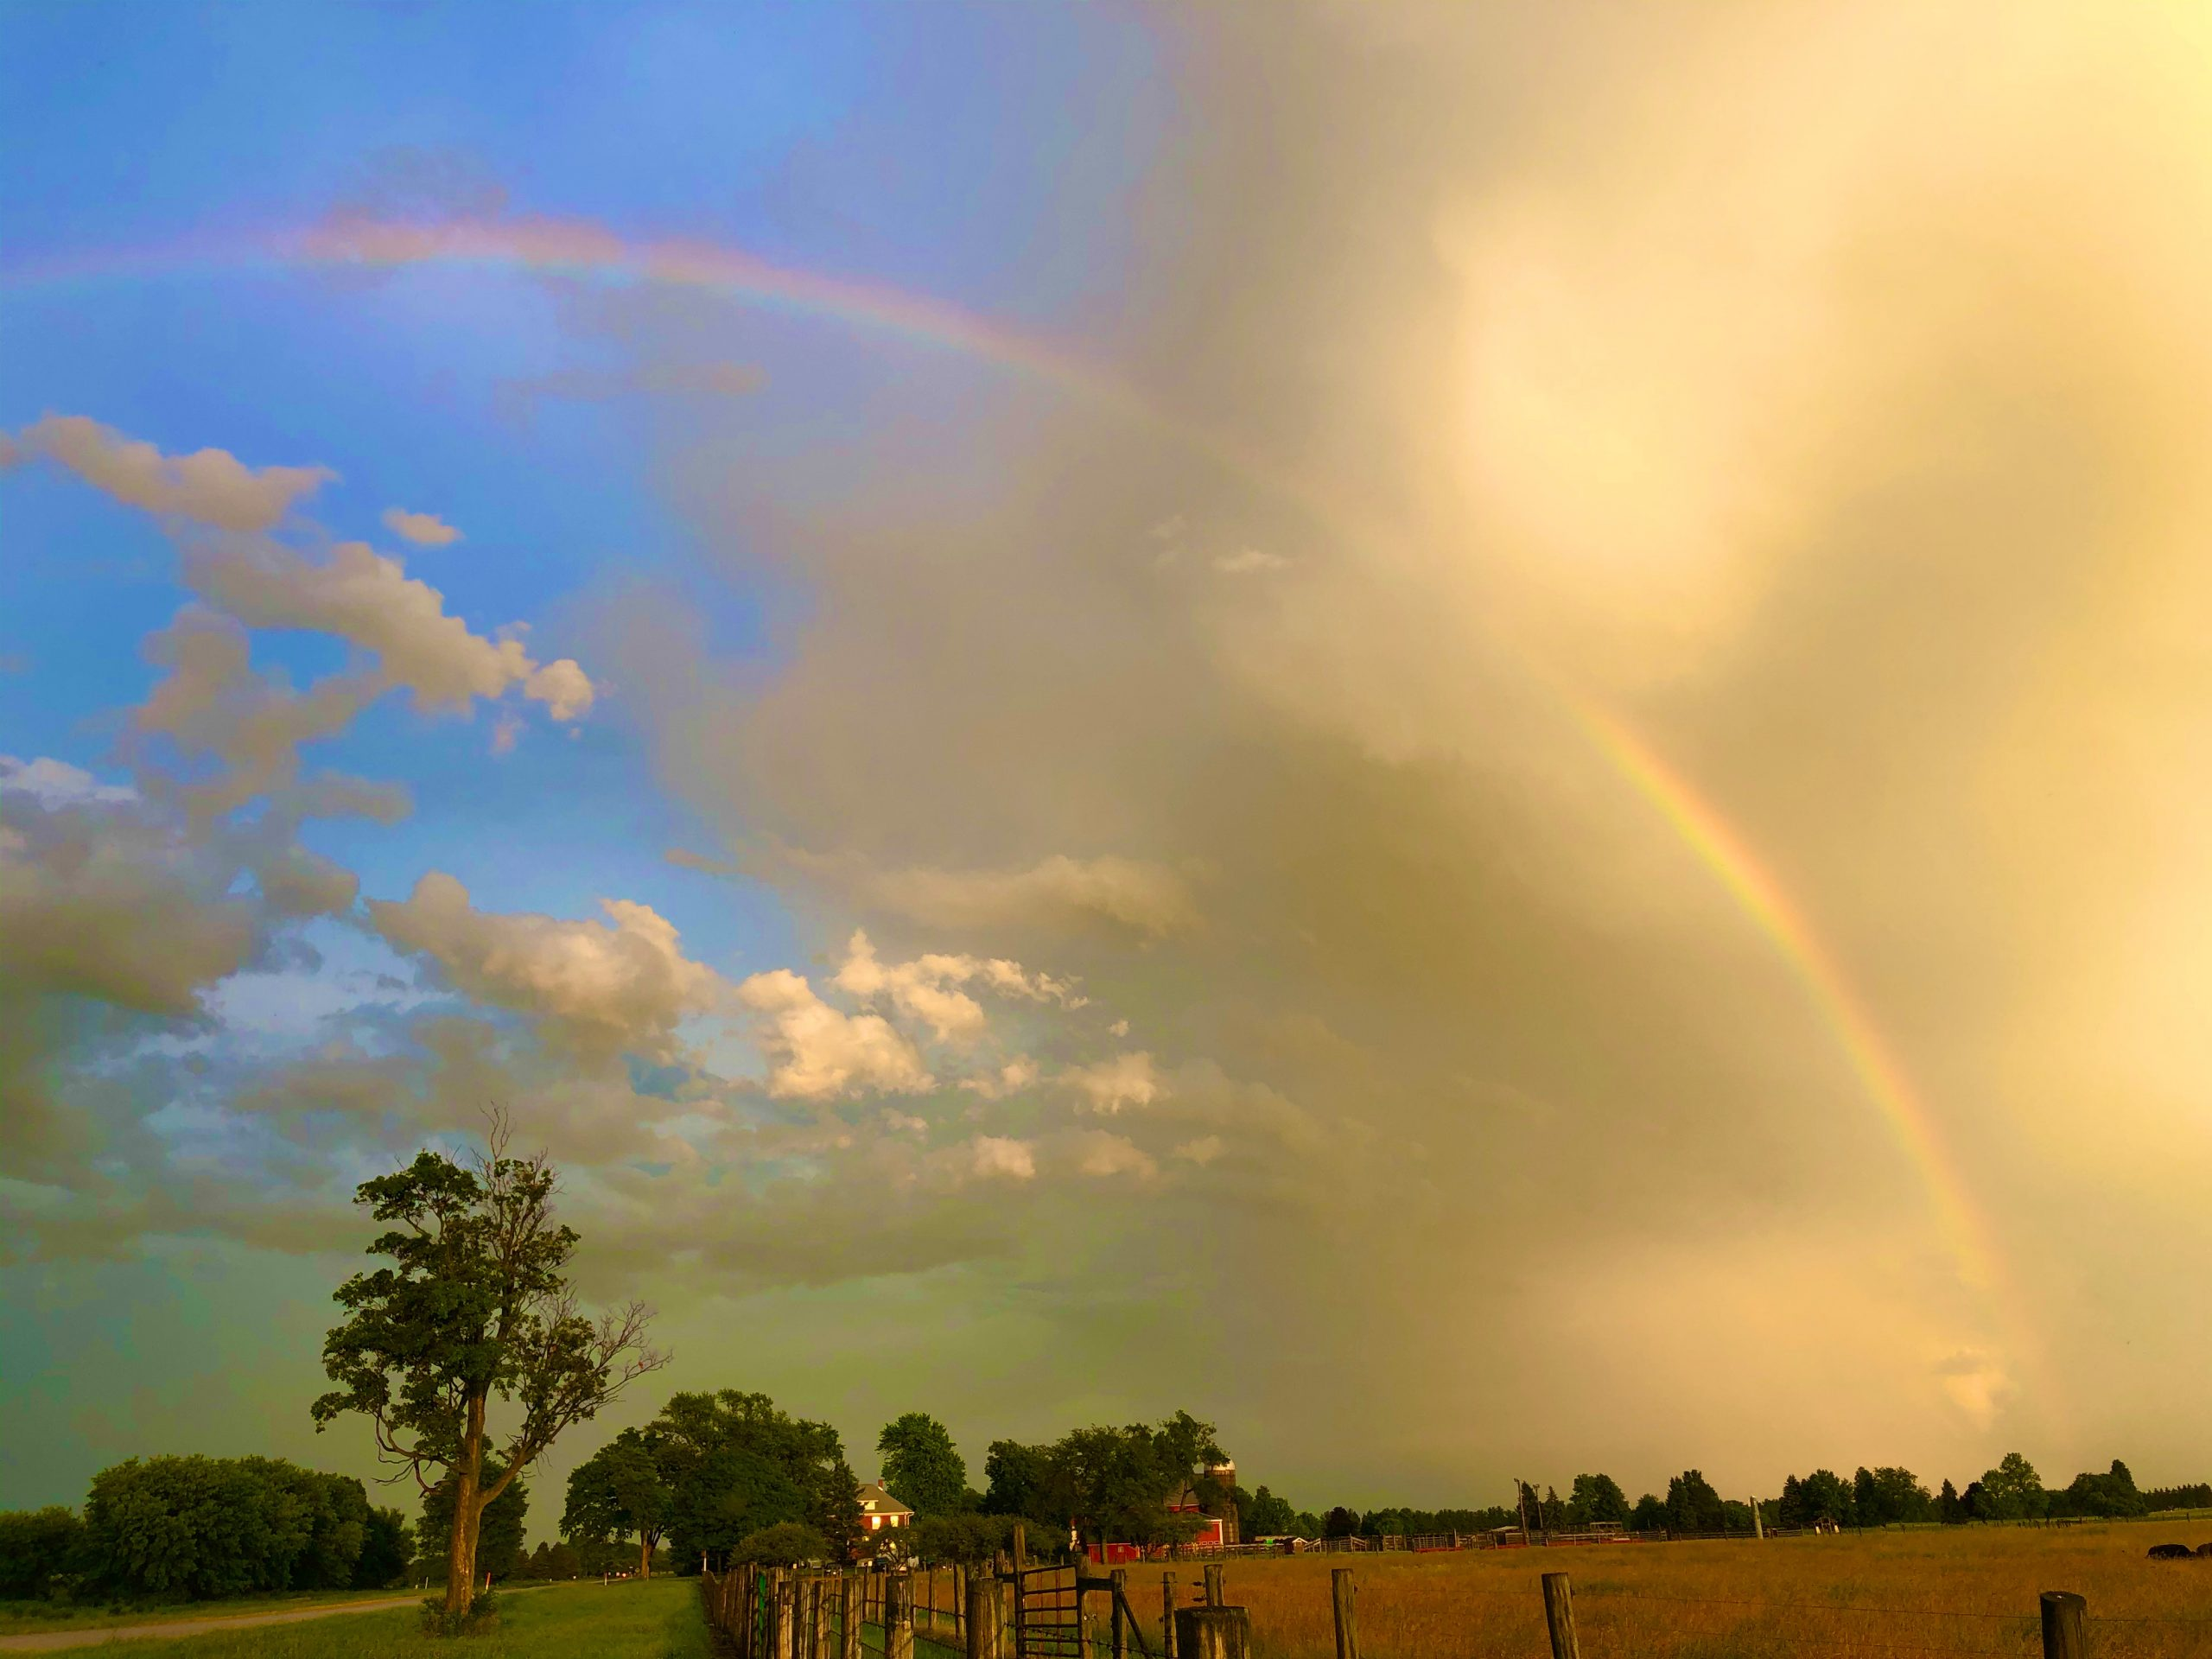 Clouds appear to make way for the arc. nature, landscape, sky, storm, rainbow, cloud, prairie, pasture, plant, tree, grass Photo: Mark Knable